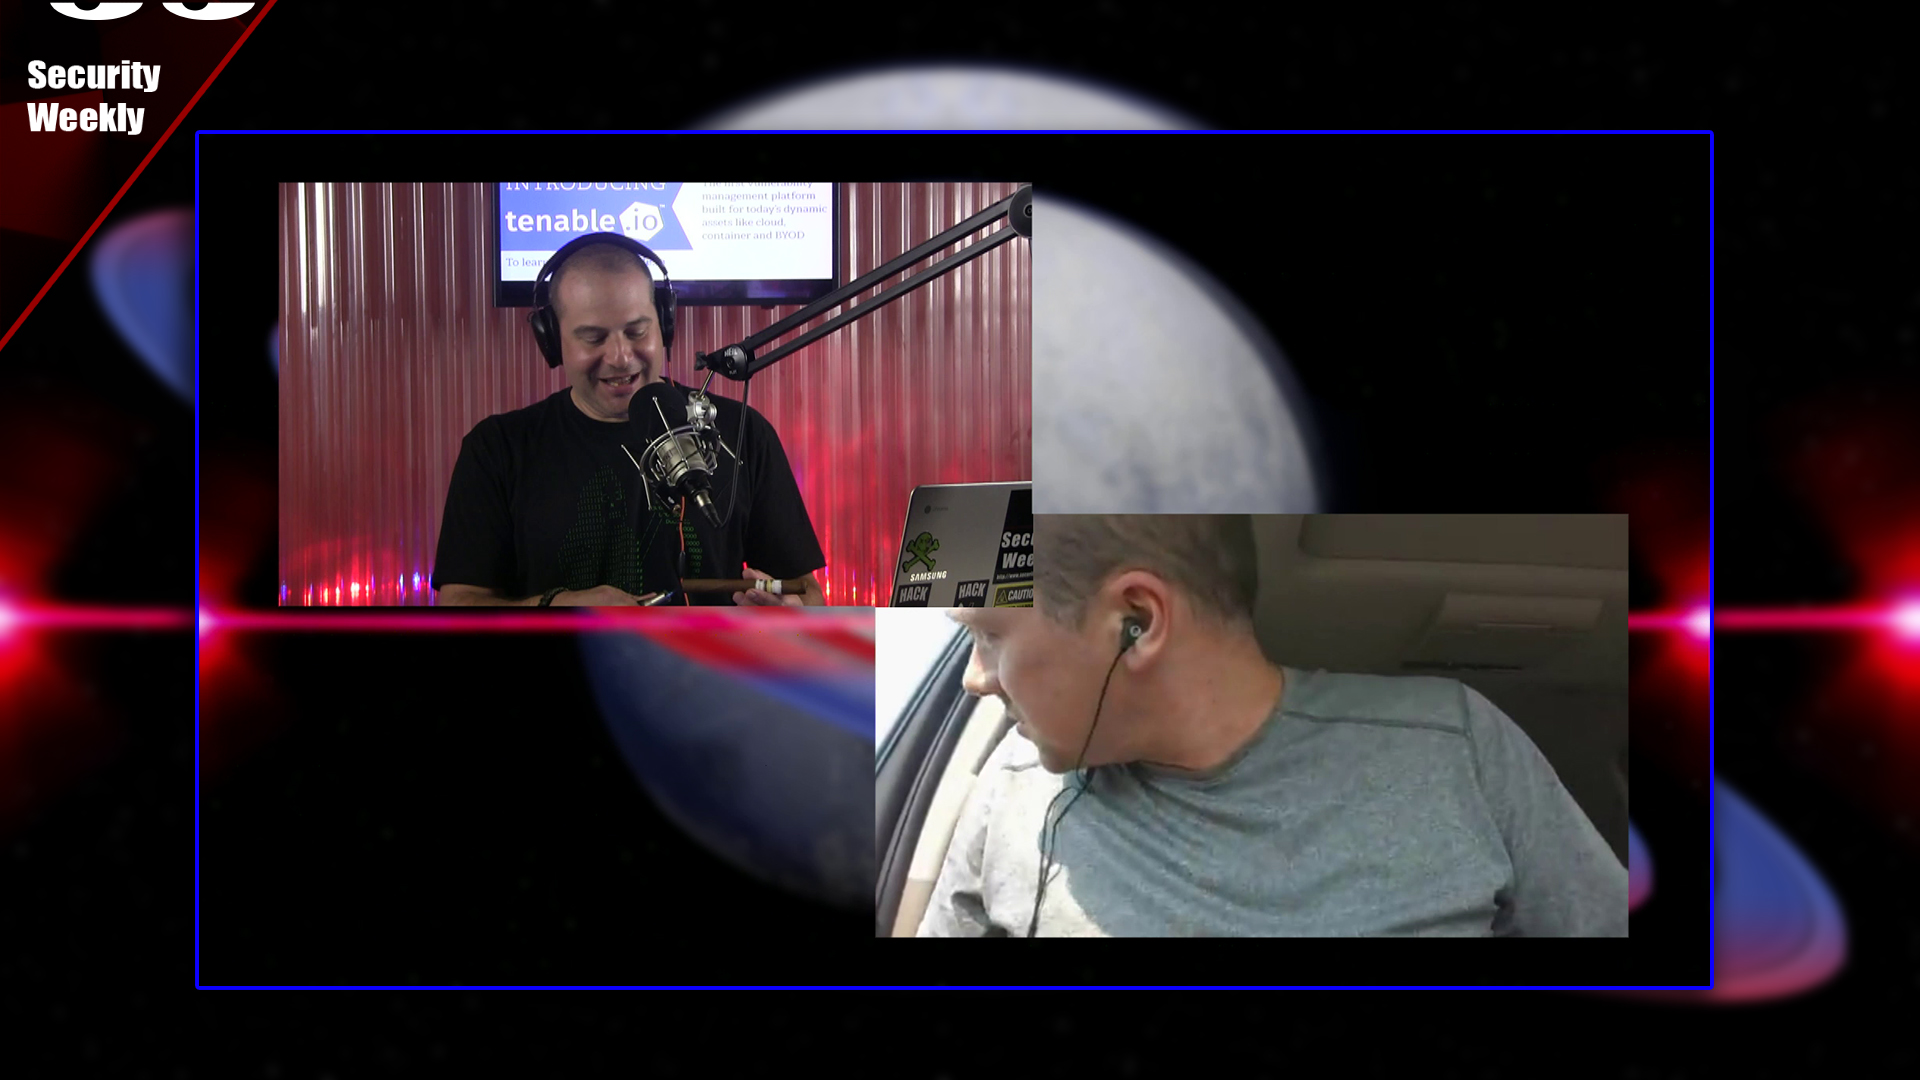 Artwork for Wandera, SOC, Qualys, and Forcepoint - Enterprise Security Weekly #55